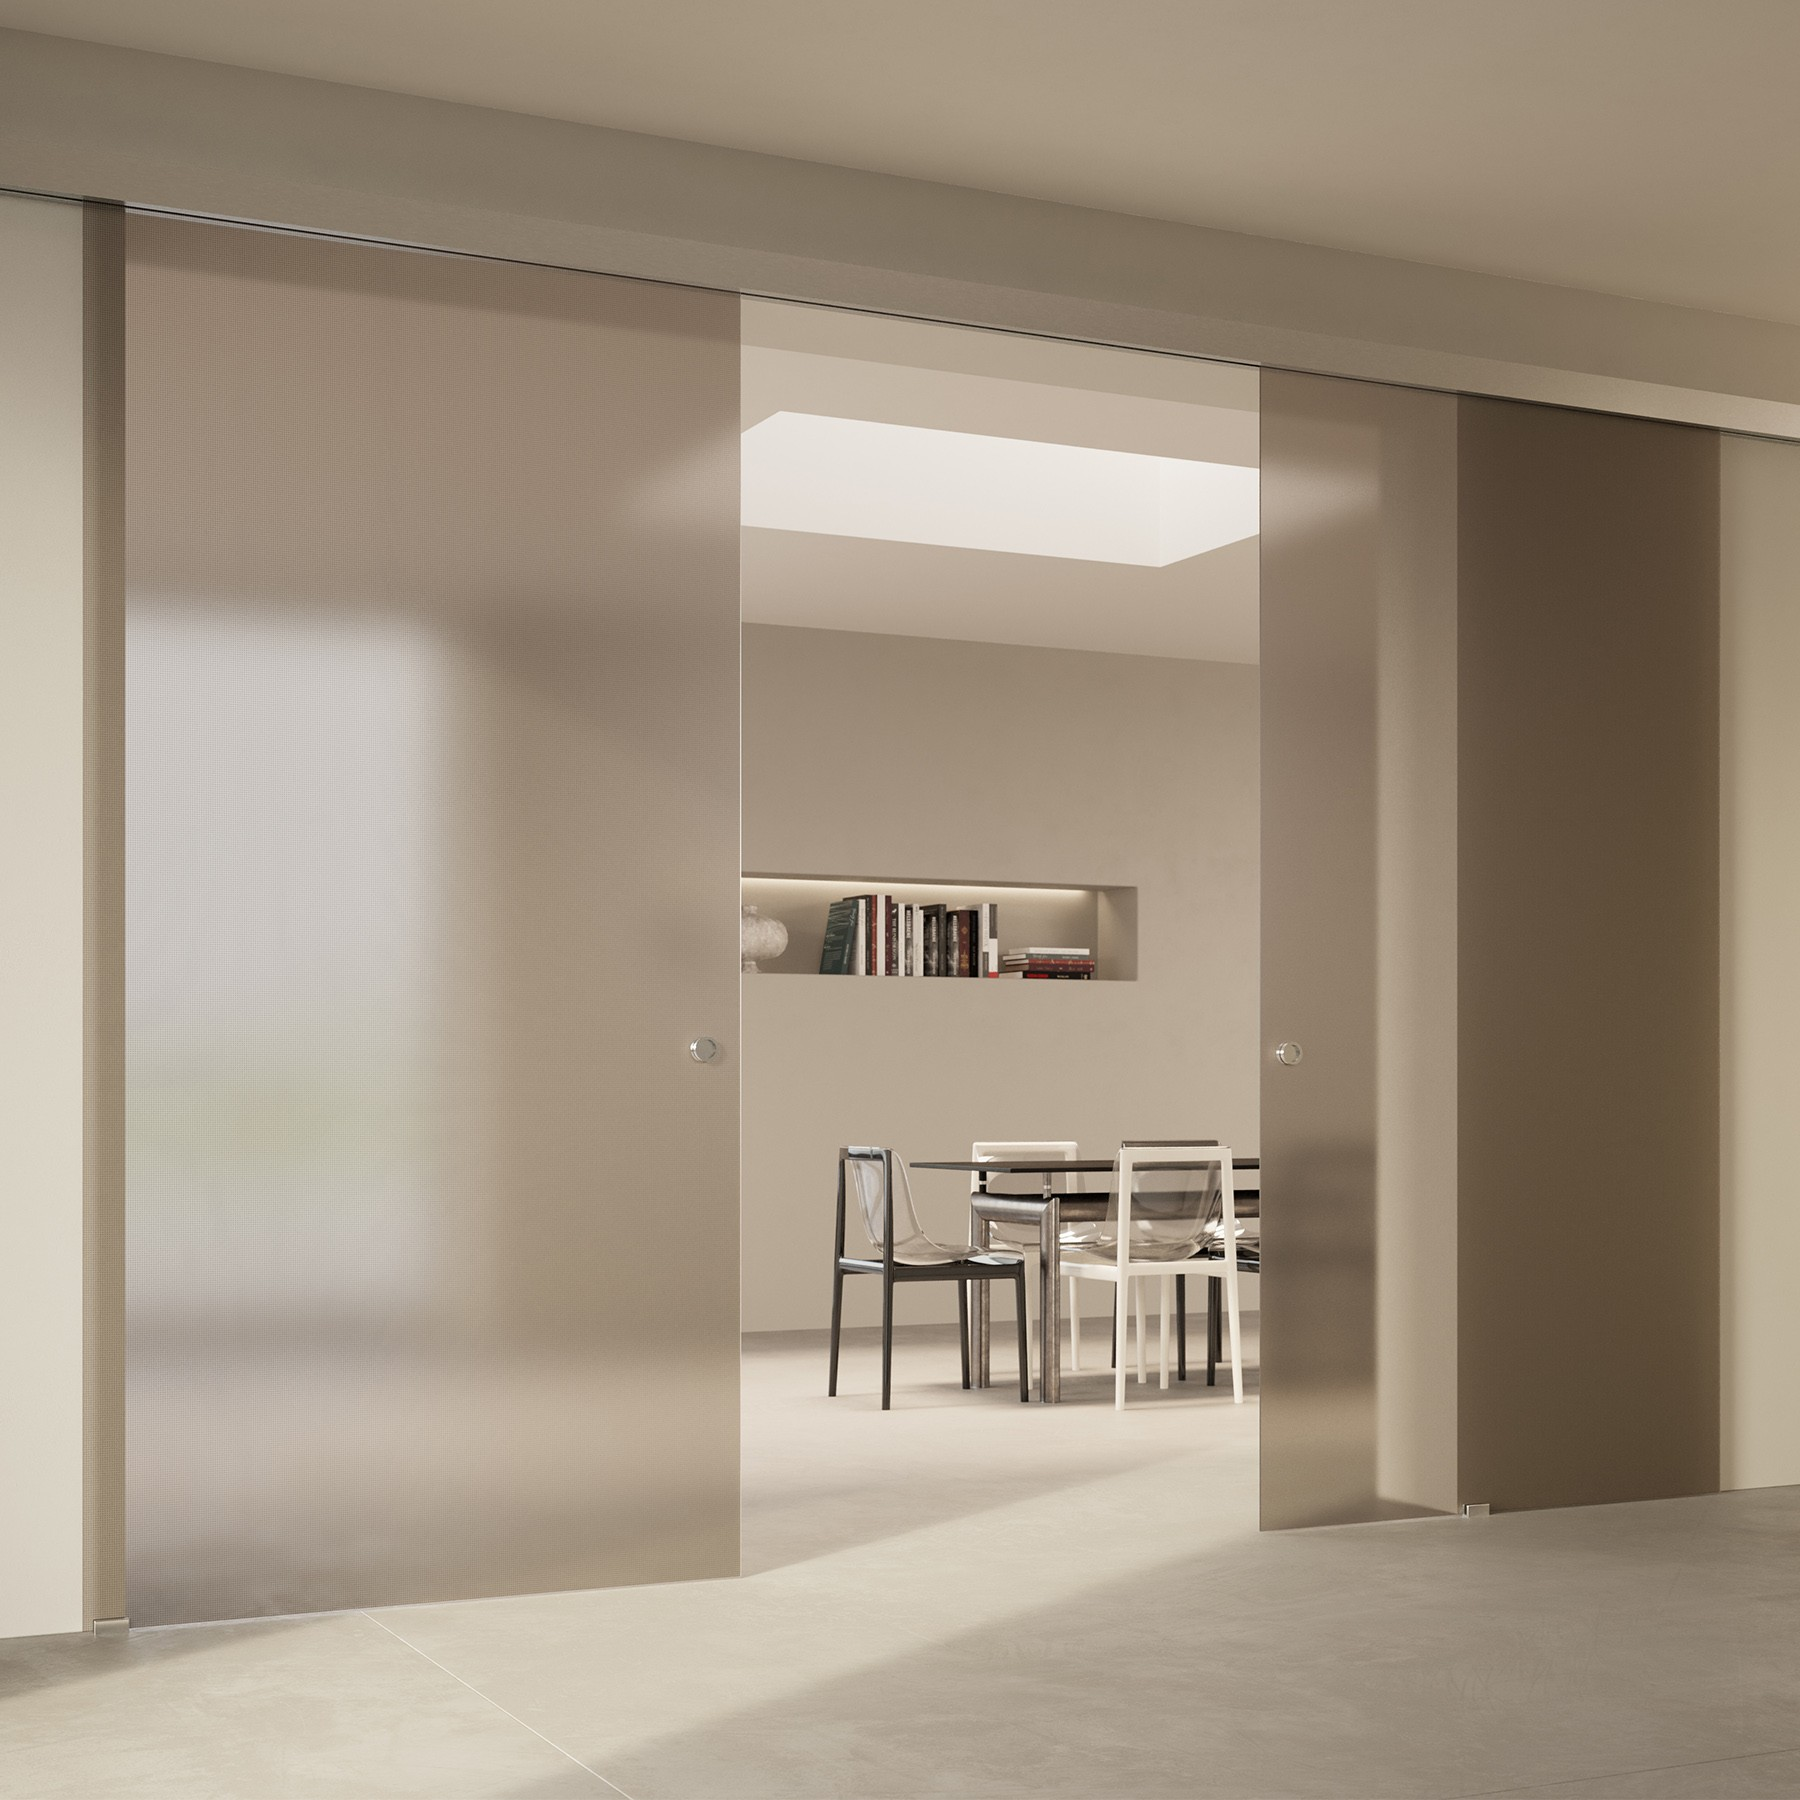 Scenario Visio with Point frosted bronzo glass